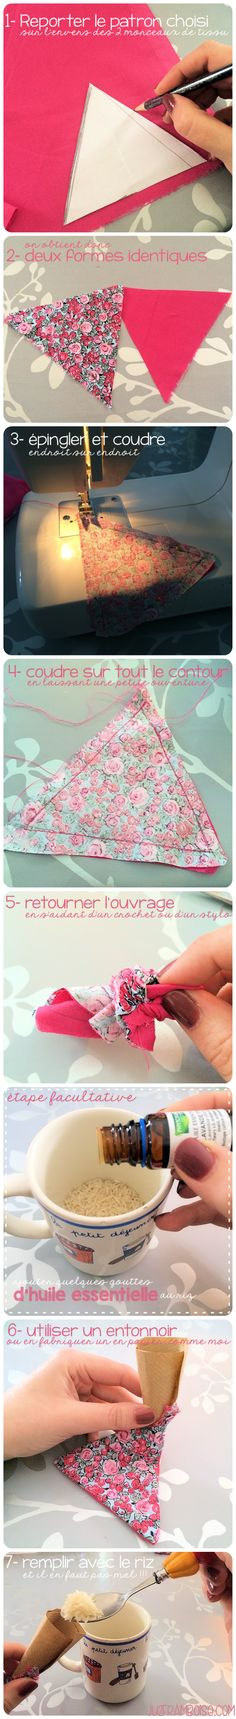 Tendance Sac 2018 : DIY : Tuto coussin nuage chauffant Tendance Sac 2018 : DIY : Tuto coussin nuage chauffant avec riz et hu. Coin Couture, Couture Sewing, Diy And Crafts, Crafts For Kids, Cute Banners, Cute Sewing Projects, Creation Couture, Sewing Art, Diy Gifts